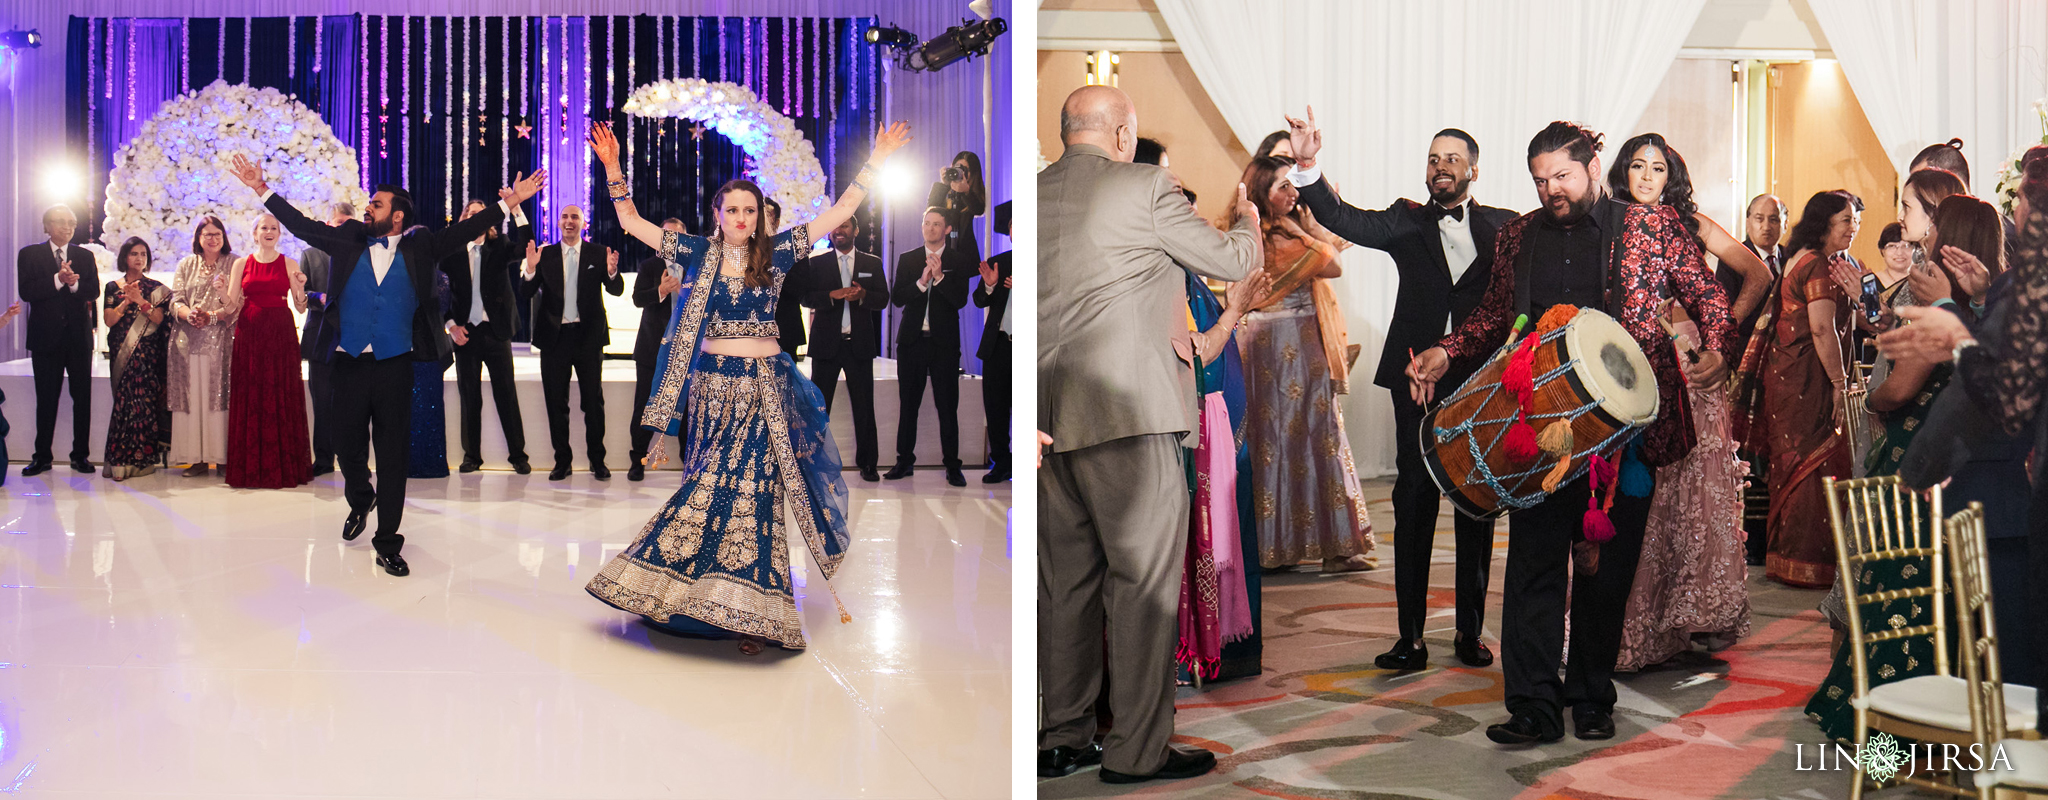 14 Hotel Irvine Joint Indian Reception Wedding Photography